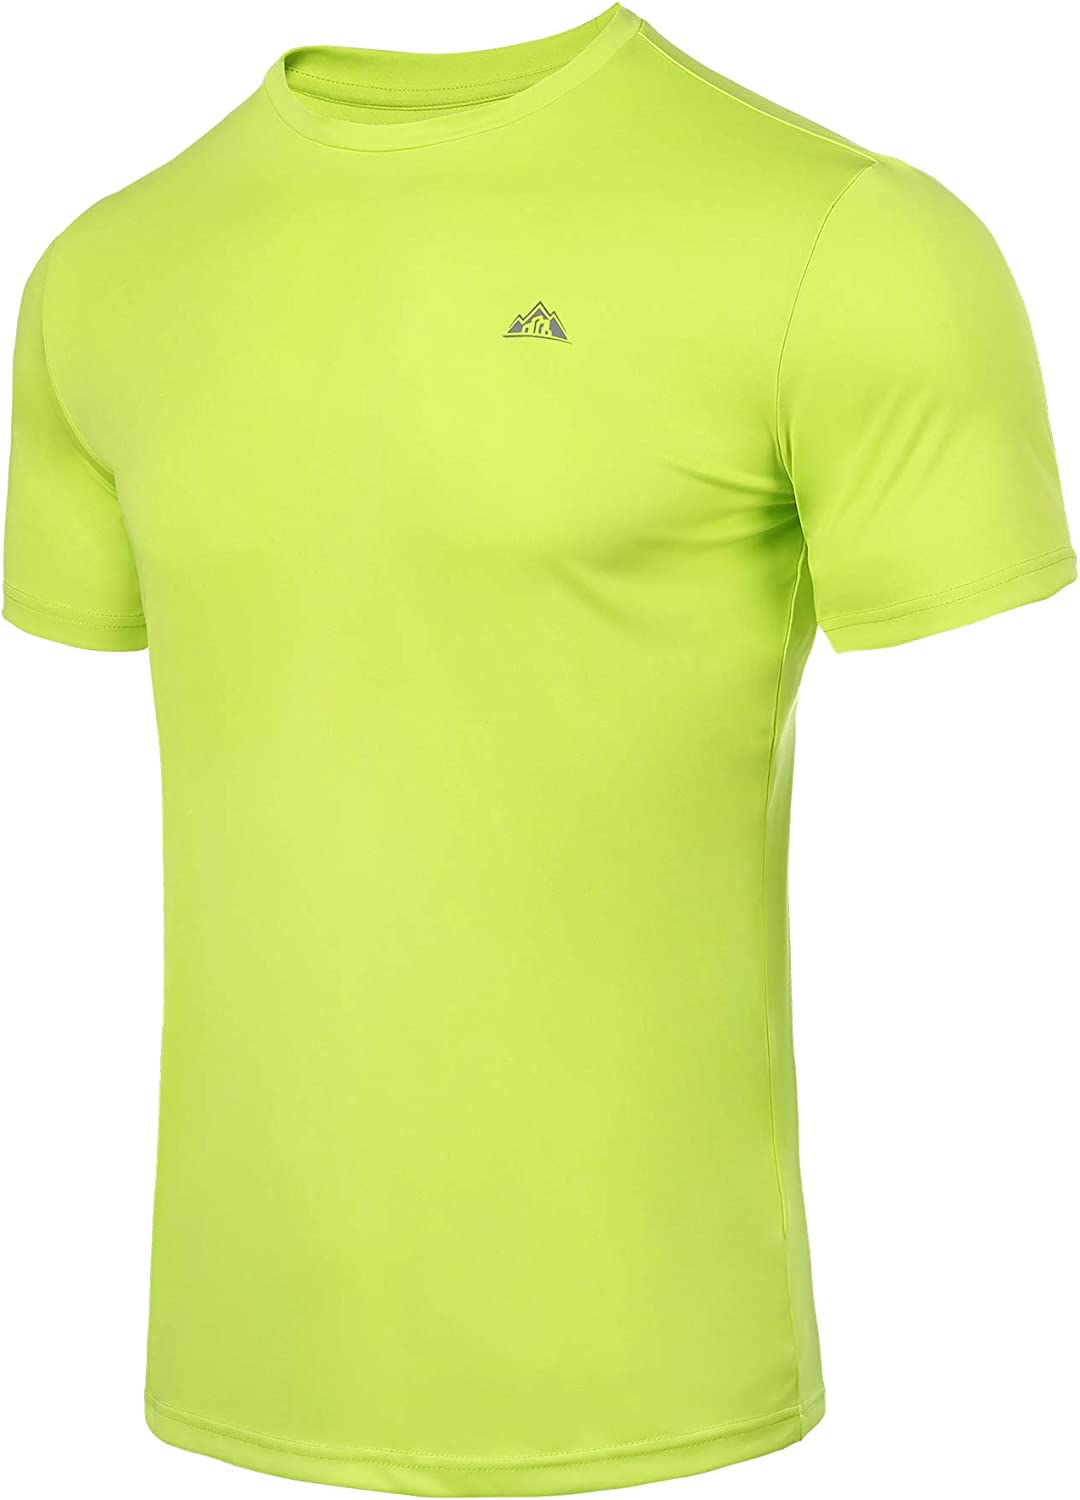 Men's Workout Shirts Lightweight Be super welcome Sun Protection Max 46% OFF SPF T- Dry Quick